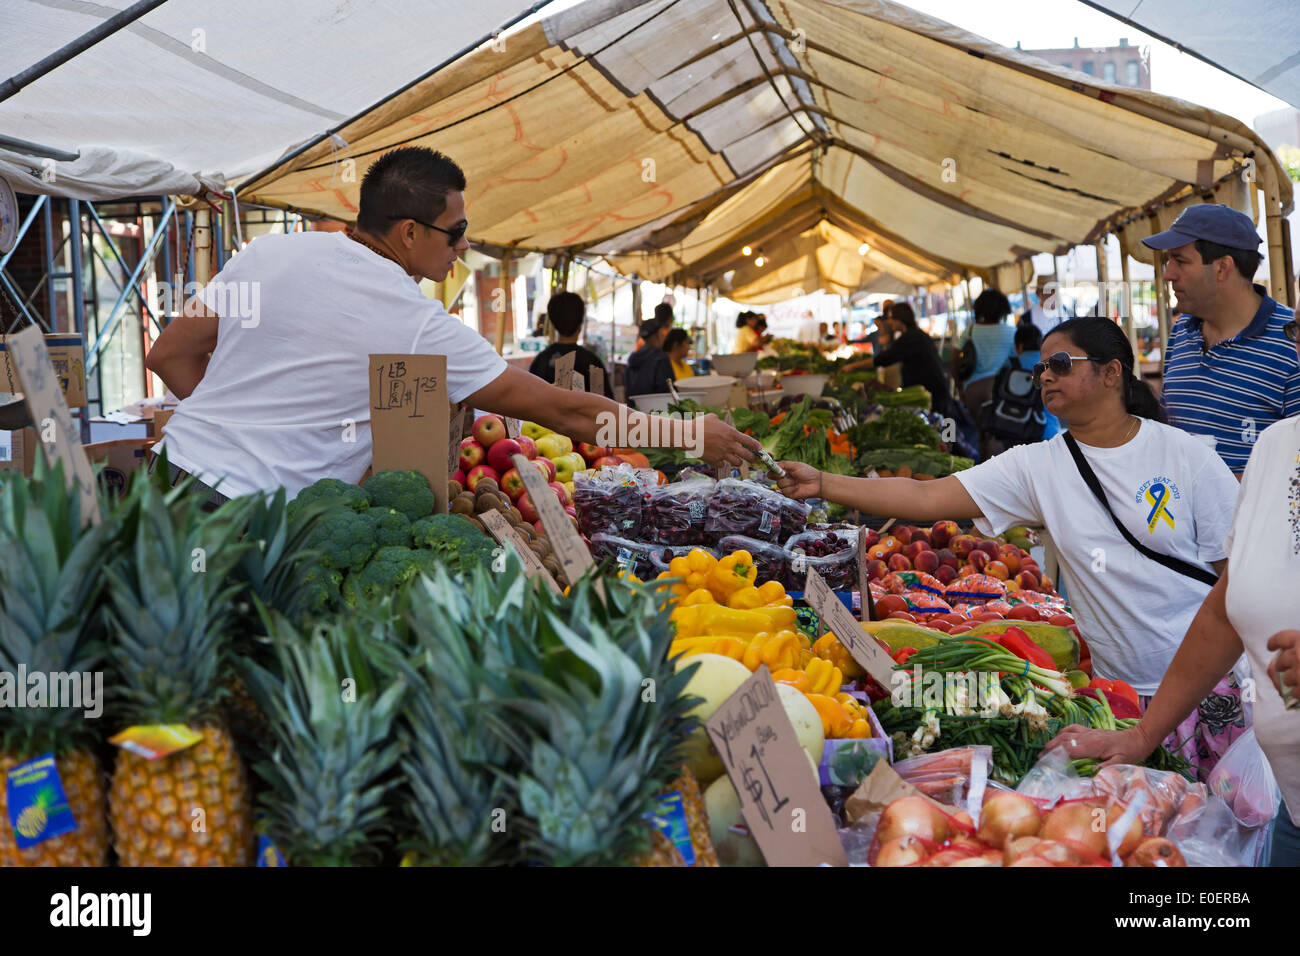 Shoppers and vendors at produce stand, Haymarket Square Farmers Market, North End, Boston, Massachusetts USA - Stock Image